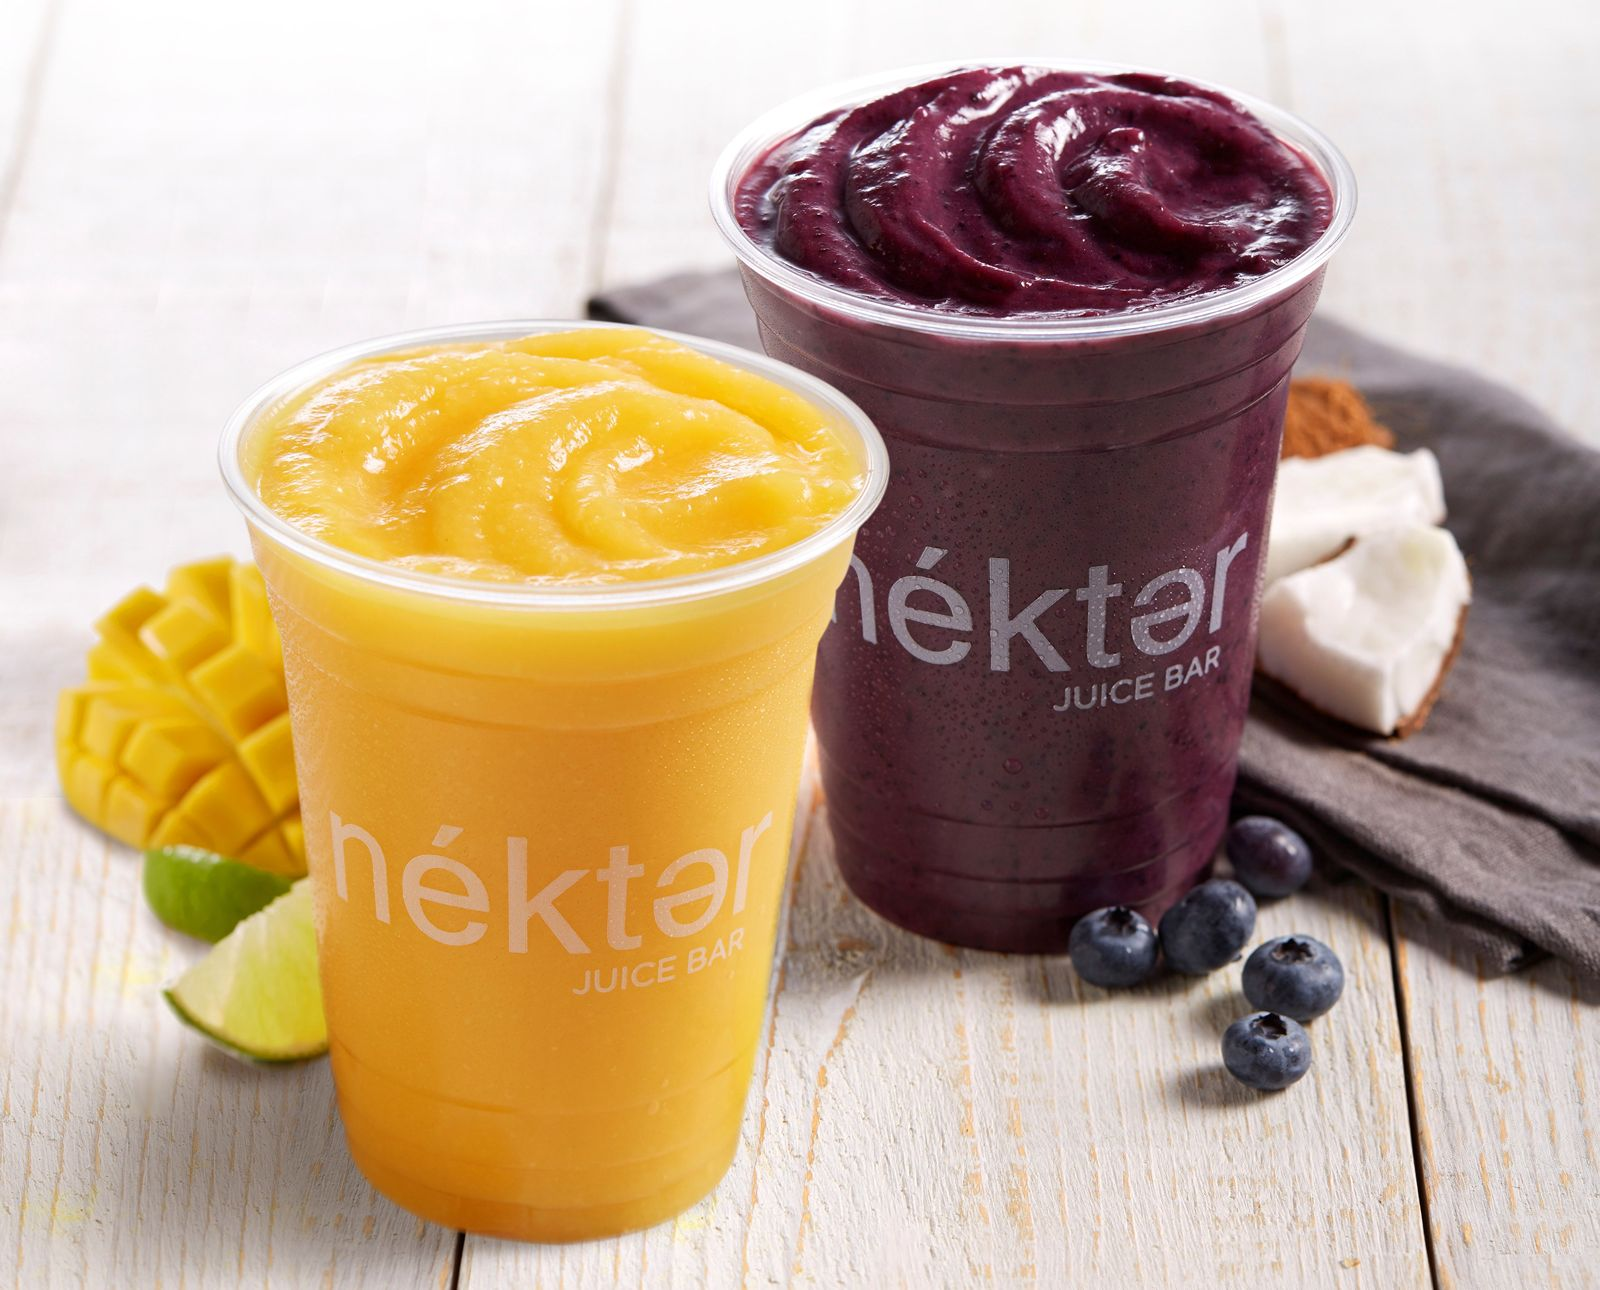 Nékter Juice Bar's Revs Up Spring Smoothies with Powerful Superfoods